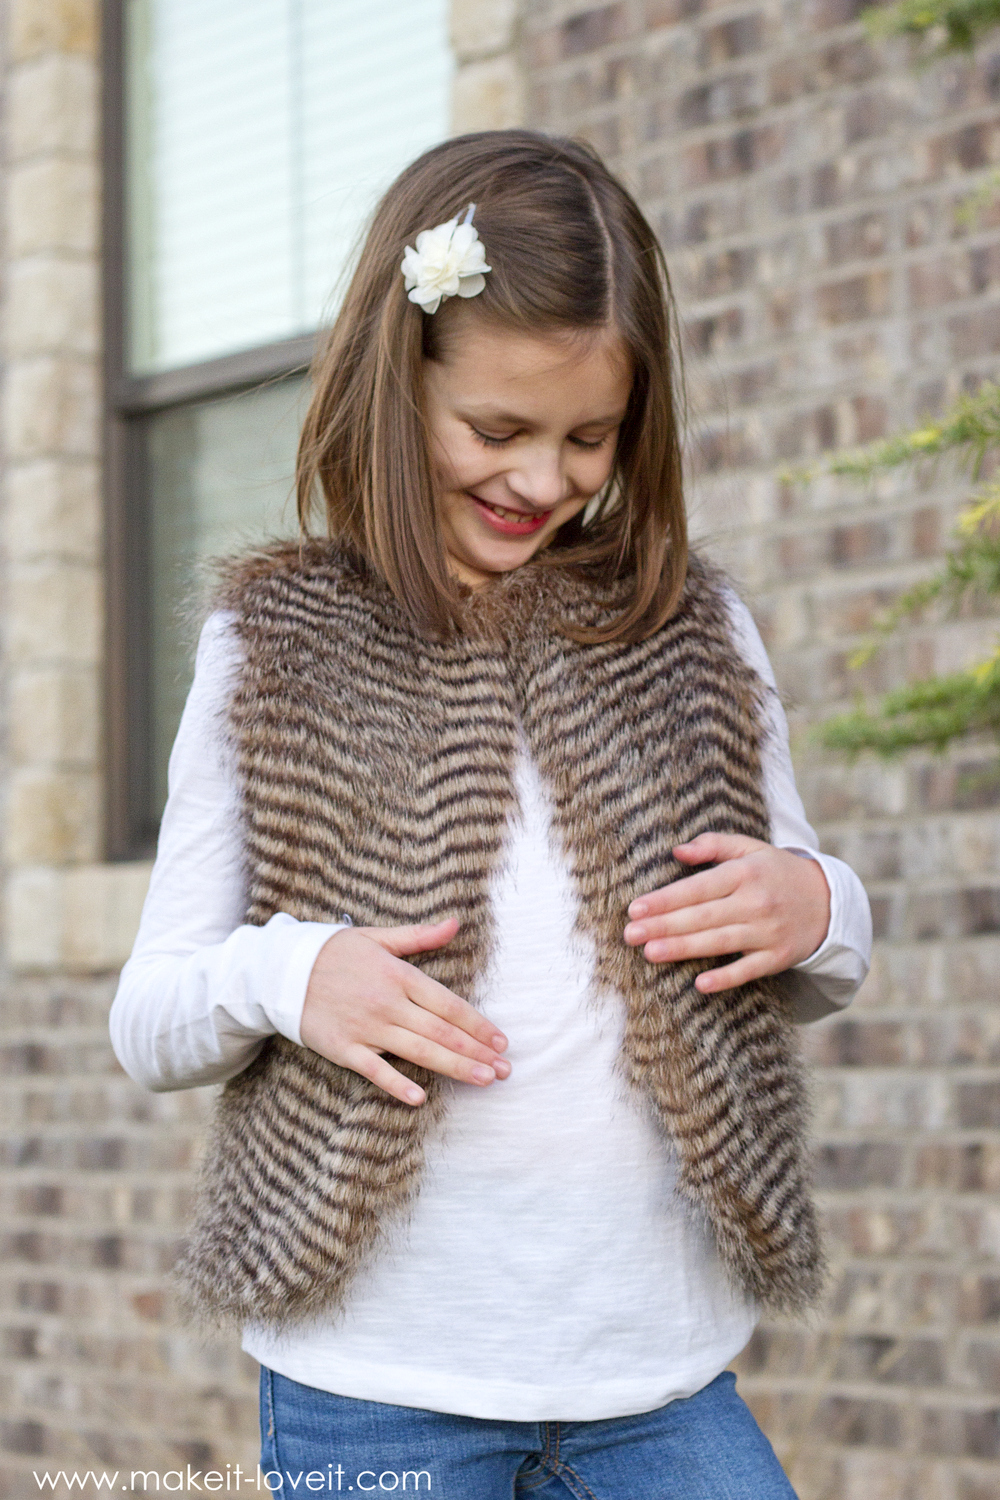 Make a FAUX FUR VEST…easier than you might think!